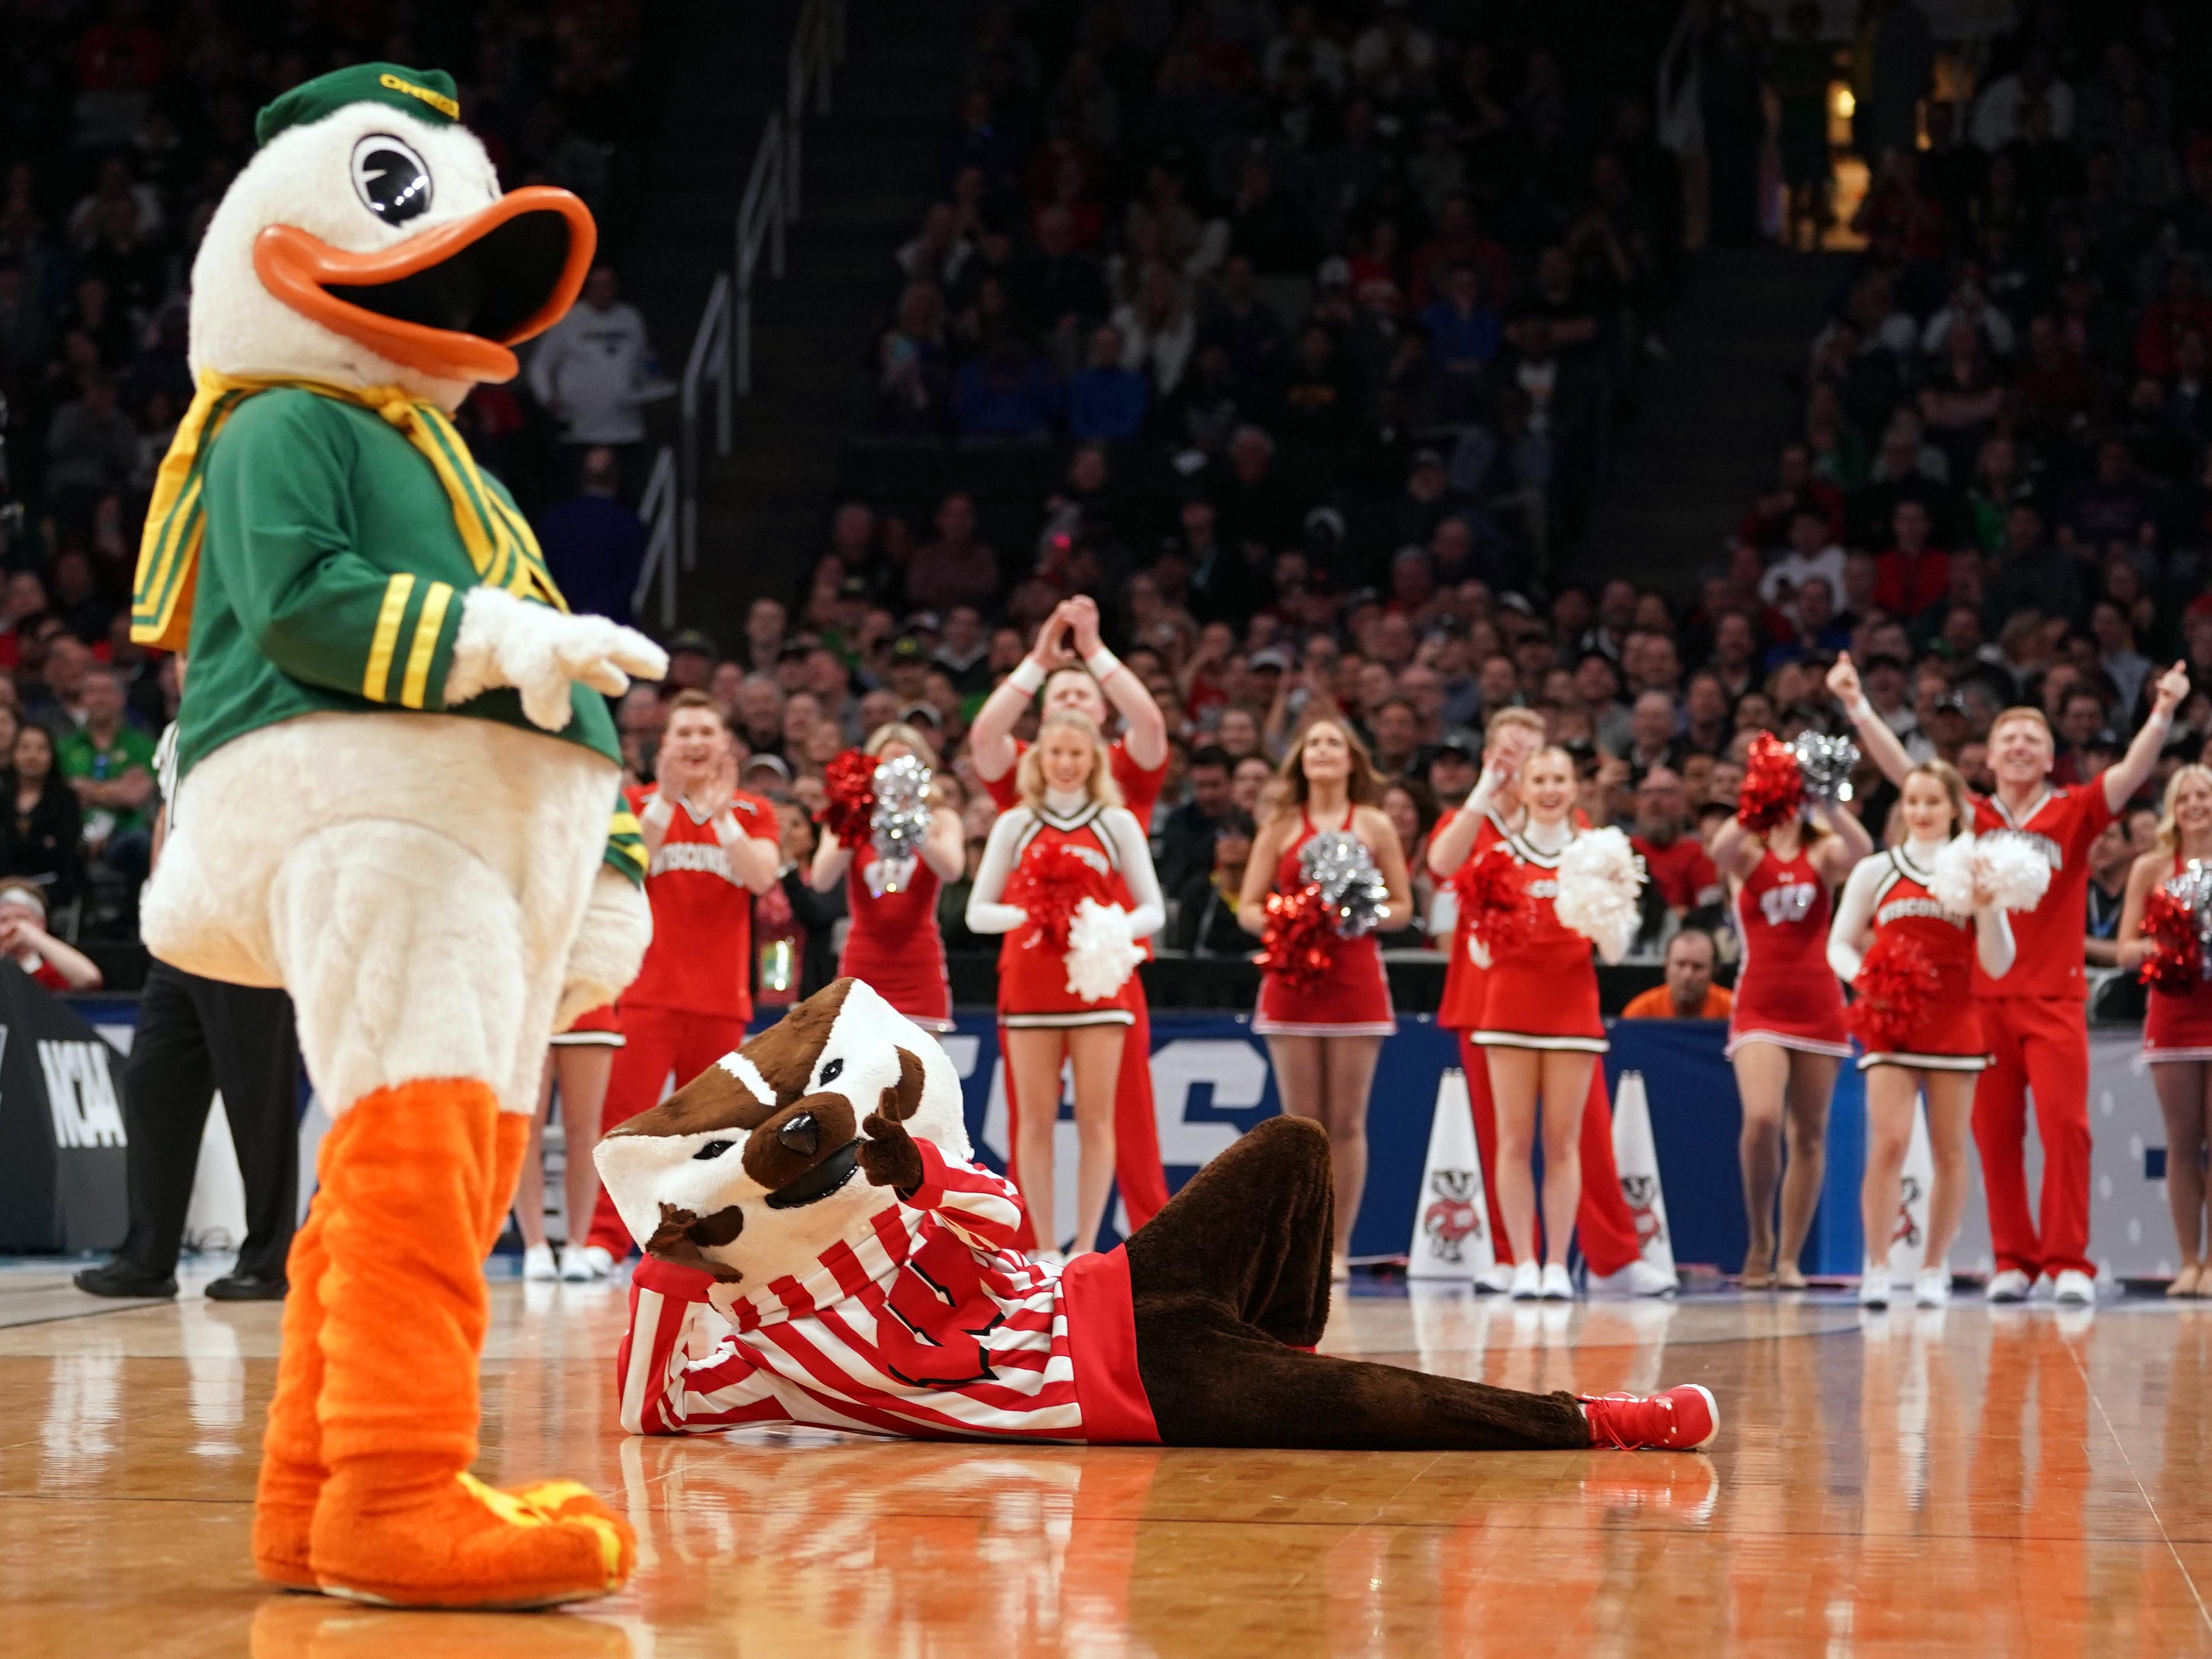 First round: The Oregon and Wisconsin mascots perform during a stoppage in play.